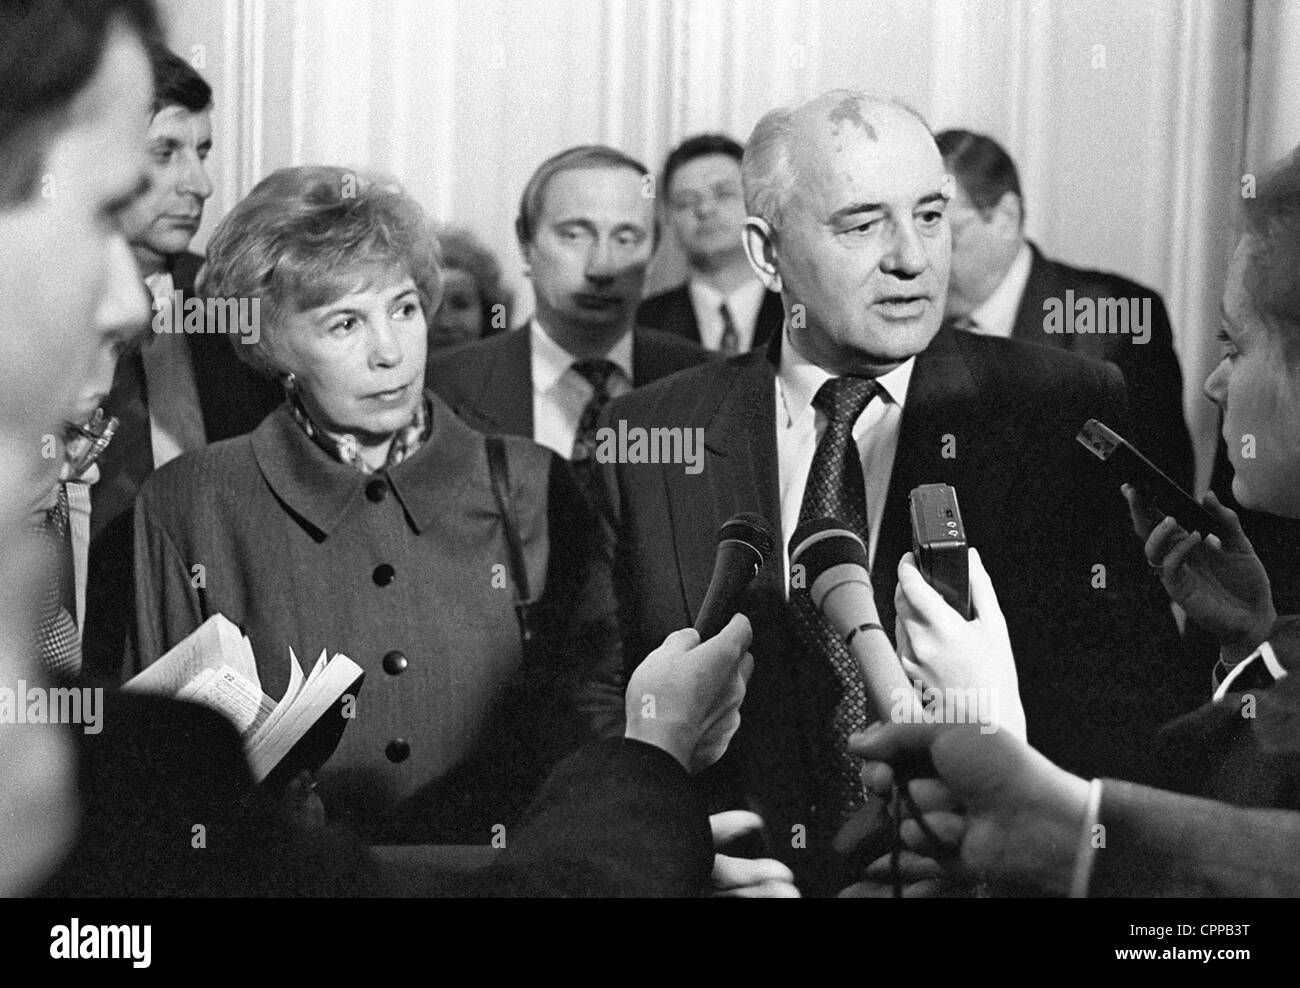 May 10, 1994 - St. Petersburg, Russia - May 10,1994.First USSR president Mikhail Gorbachev with his spouse Raisa - Stock Image